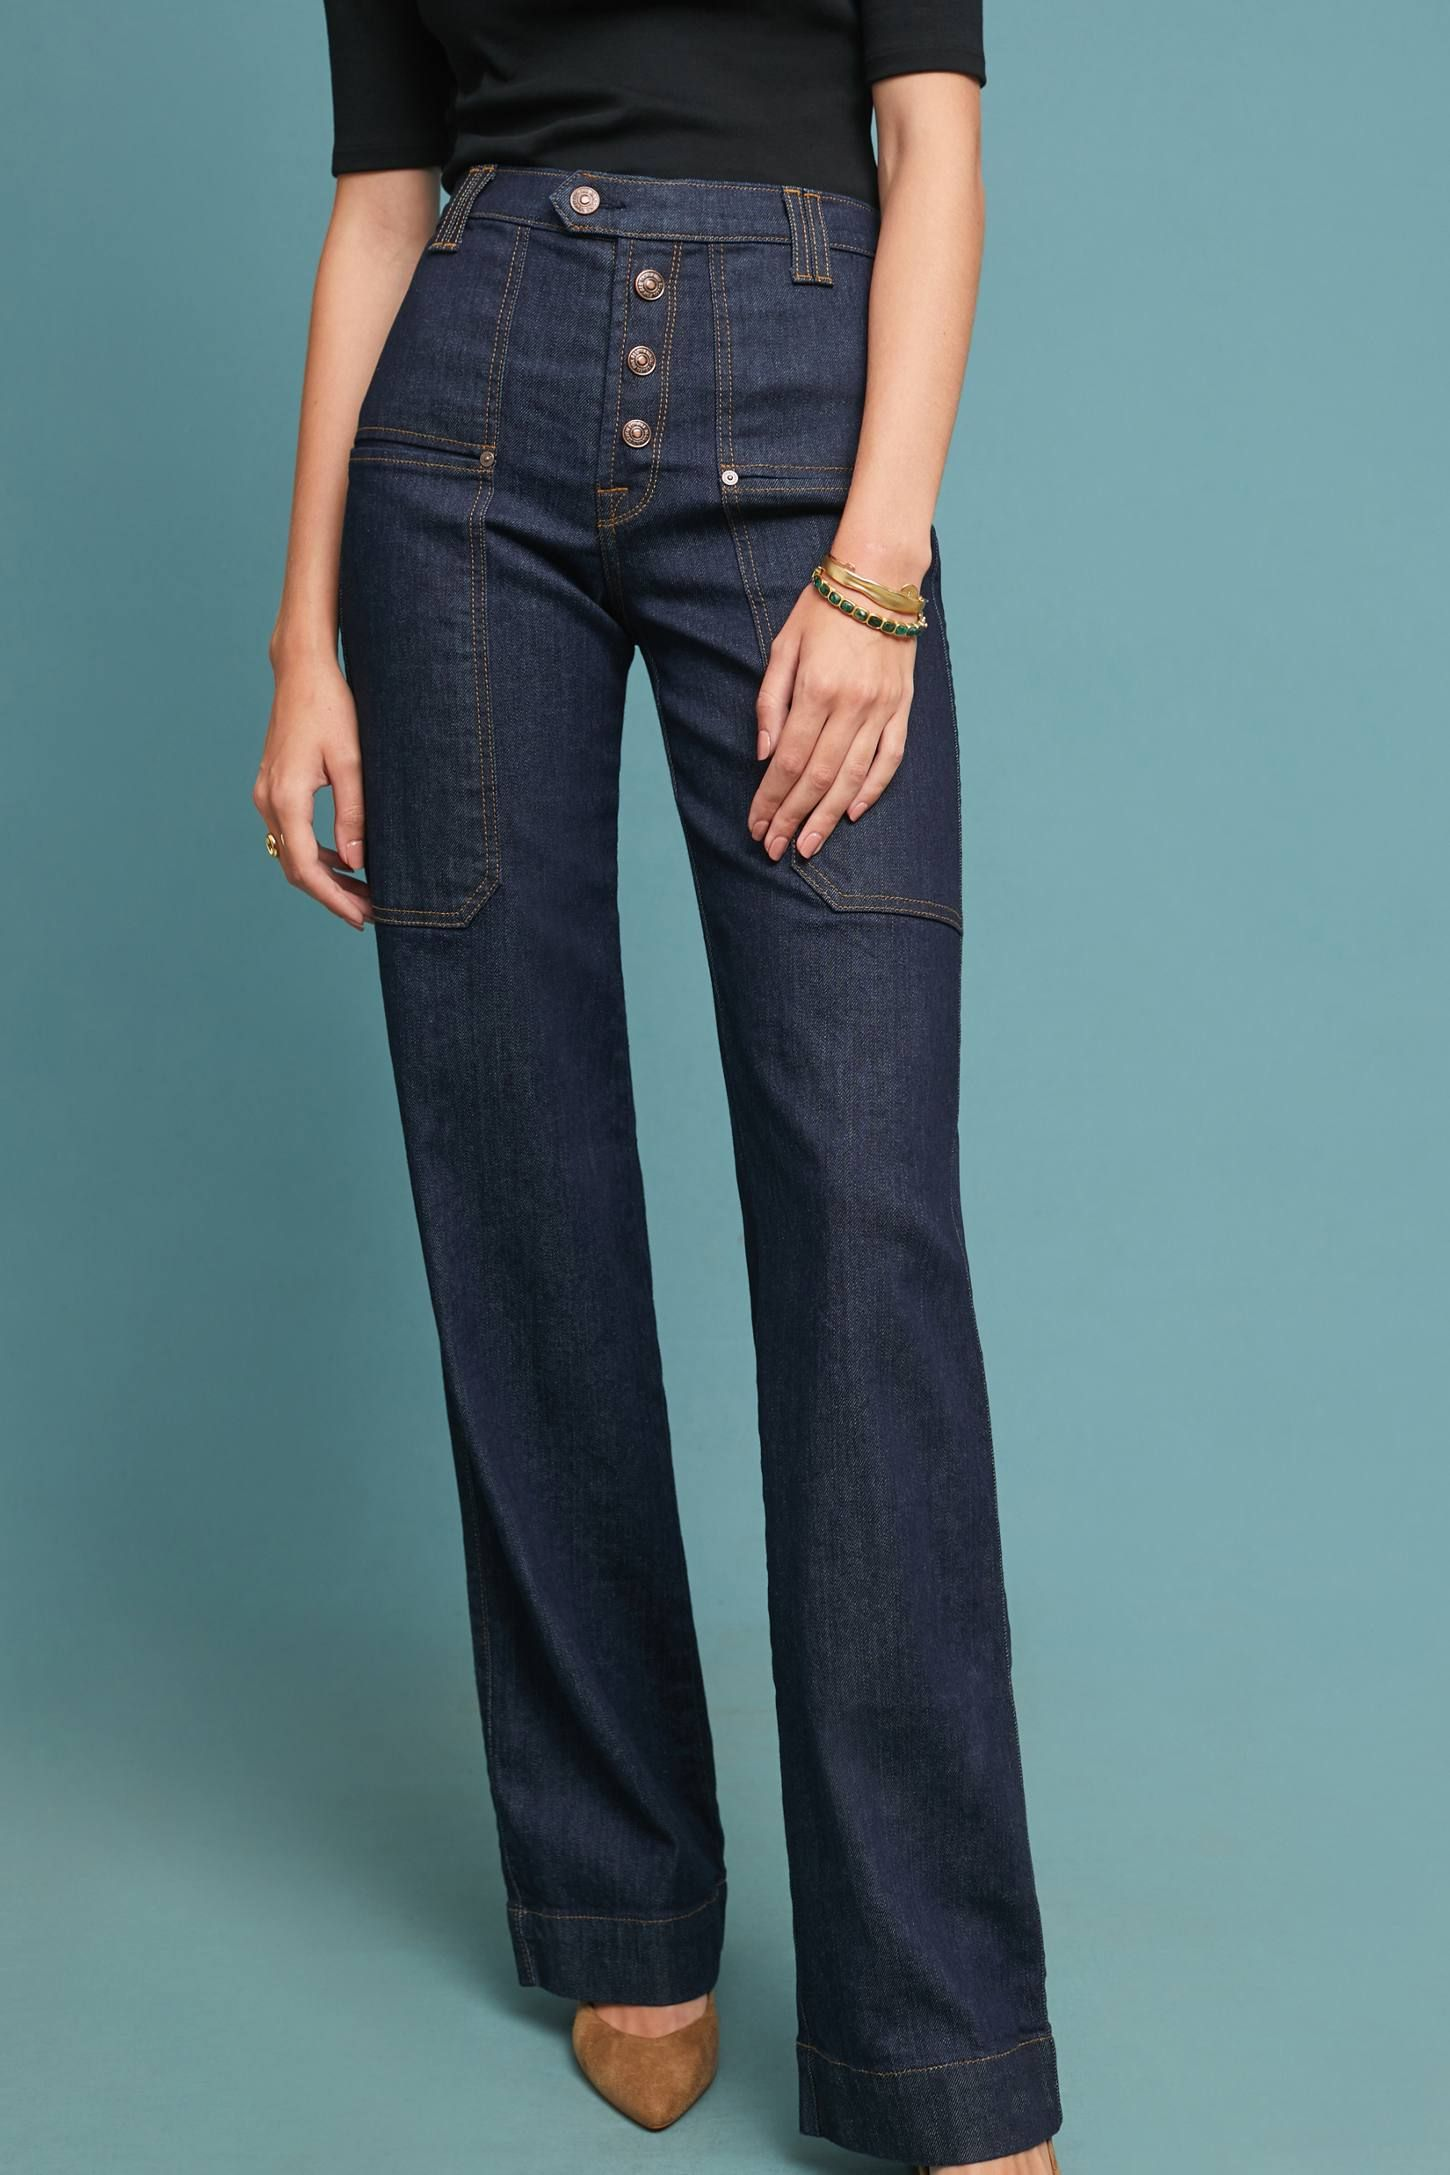 7 For All Mankind Alex Ultra High Rise Utility Jeans High Waist